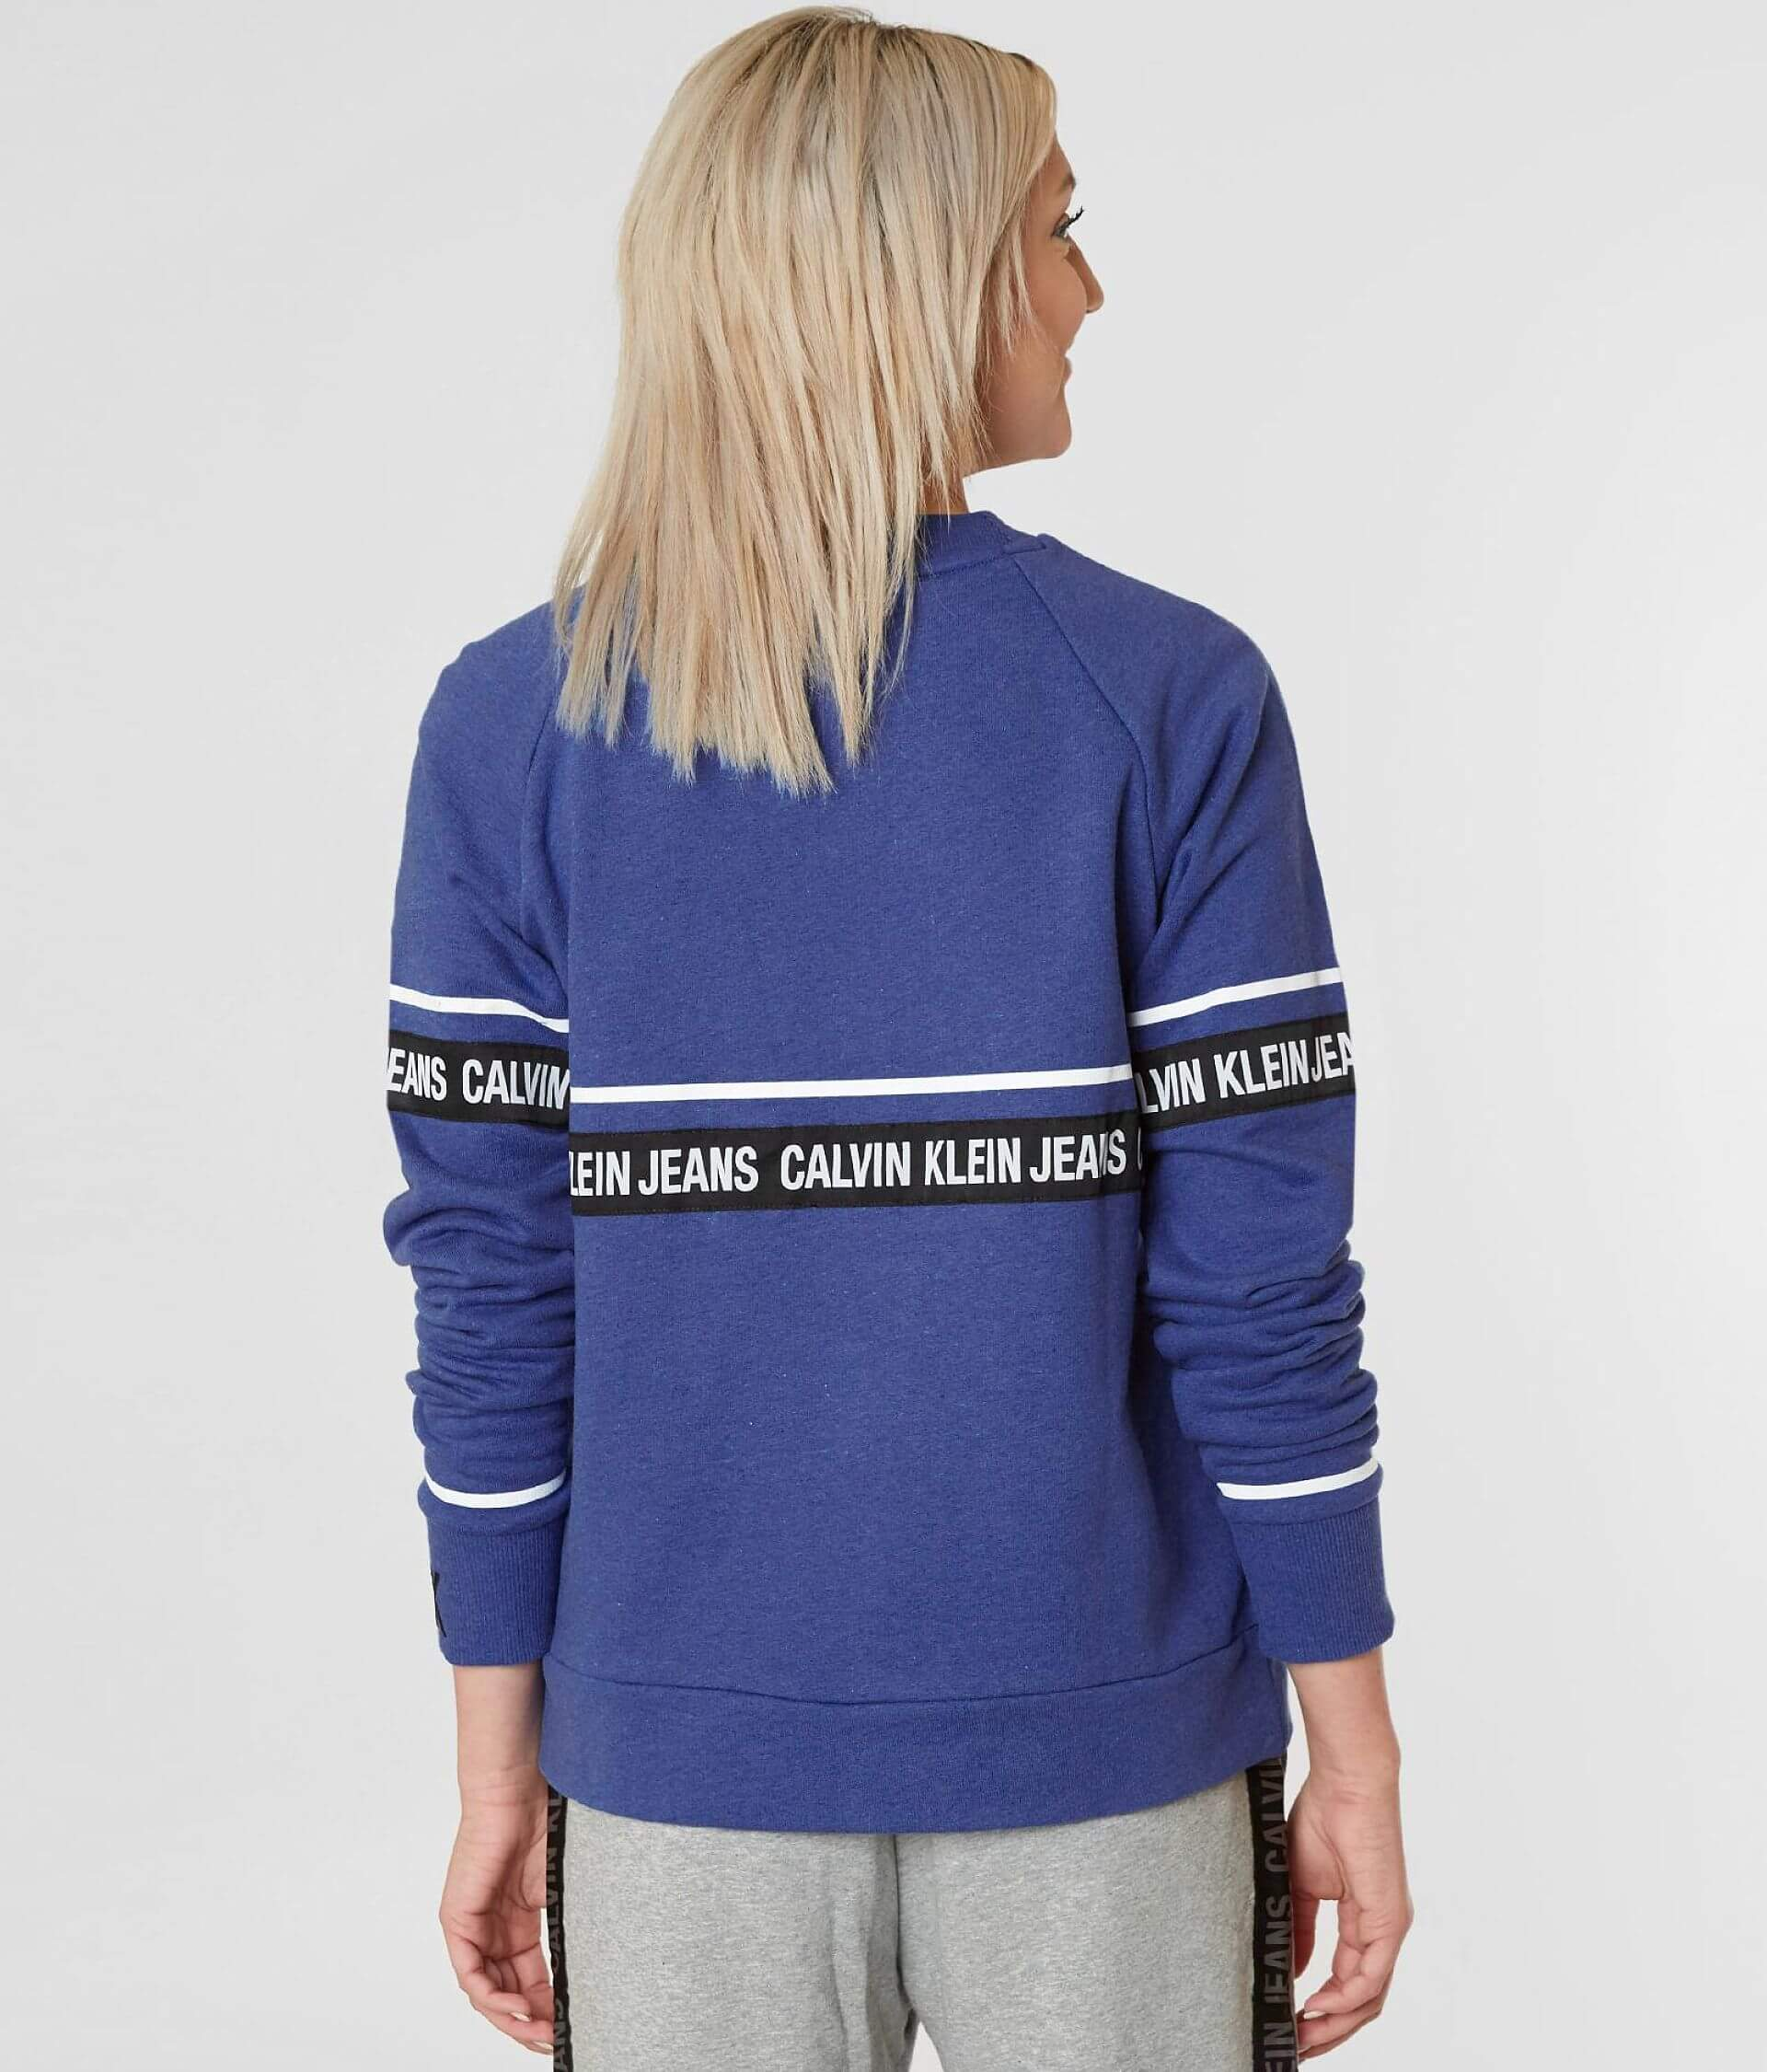 0c1e7f1f1c2 Calvin Klein Crew Neck Sweatshirt - Women s Sweatshirts in Turkish ...